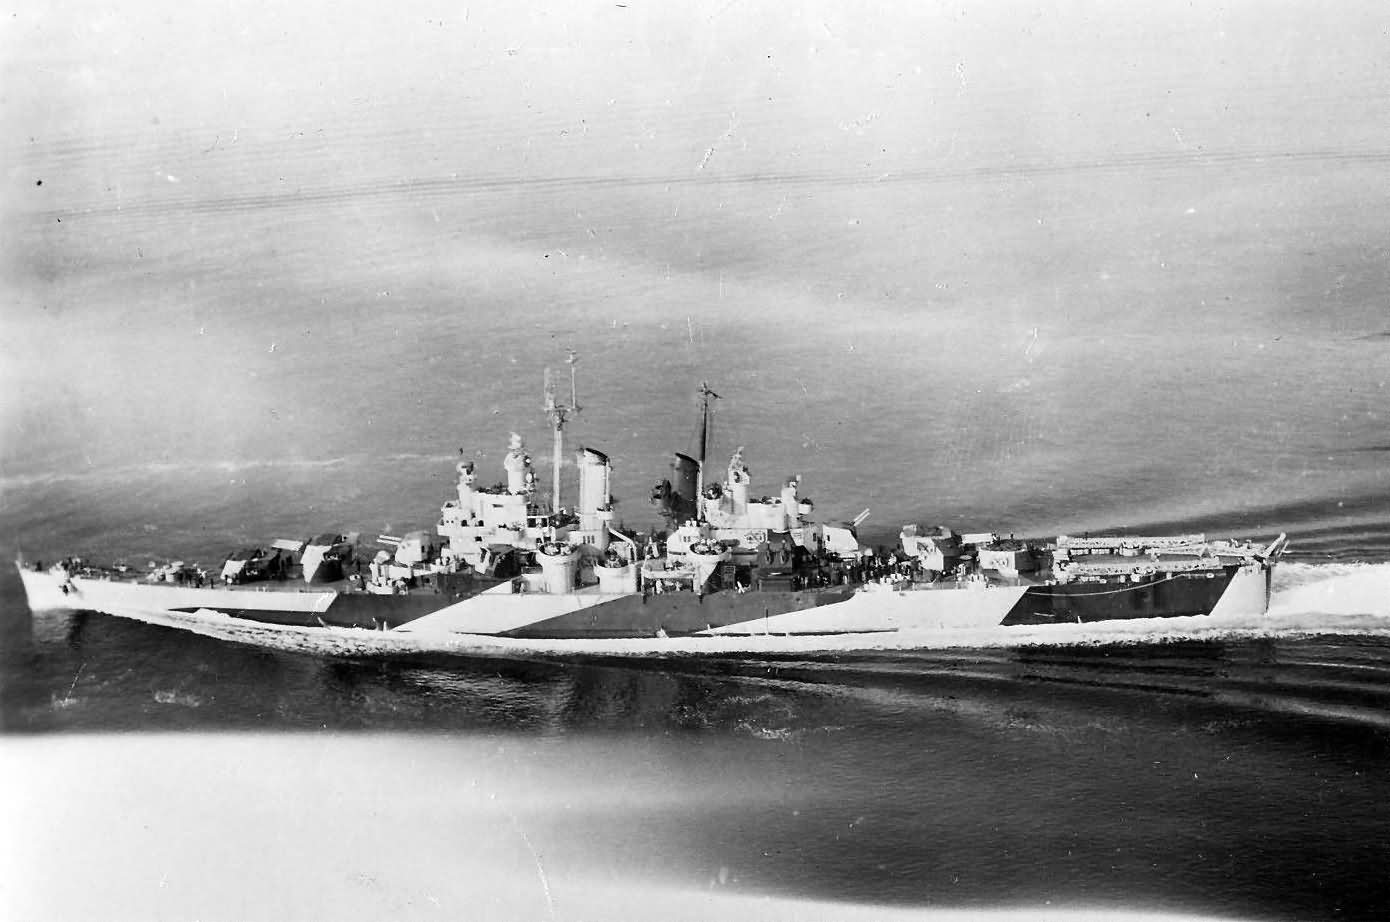 Cleveland class light cruiser USS Houston CL-81